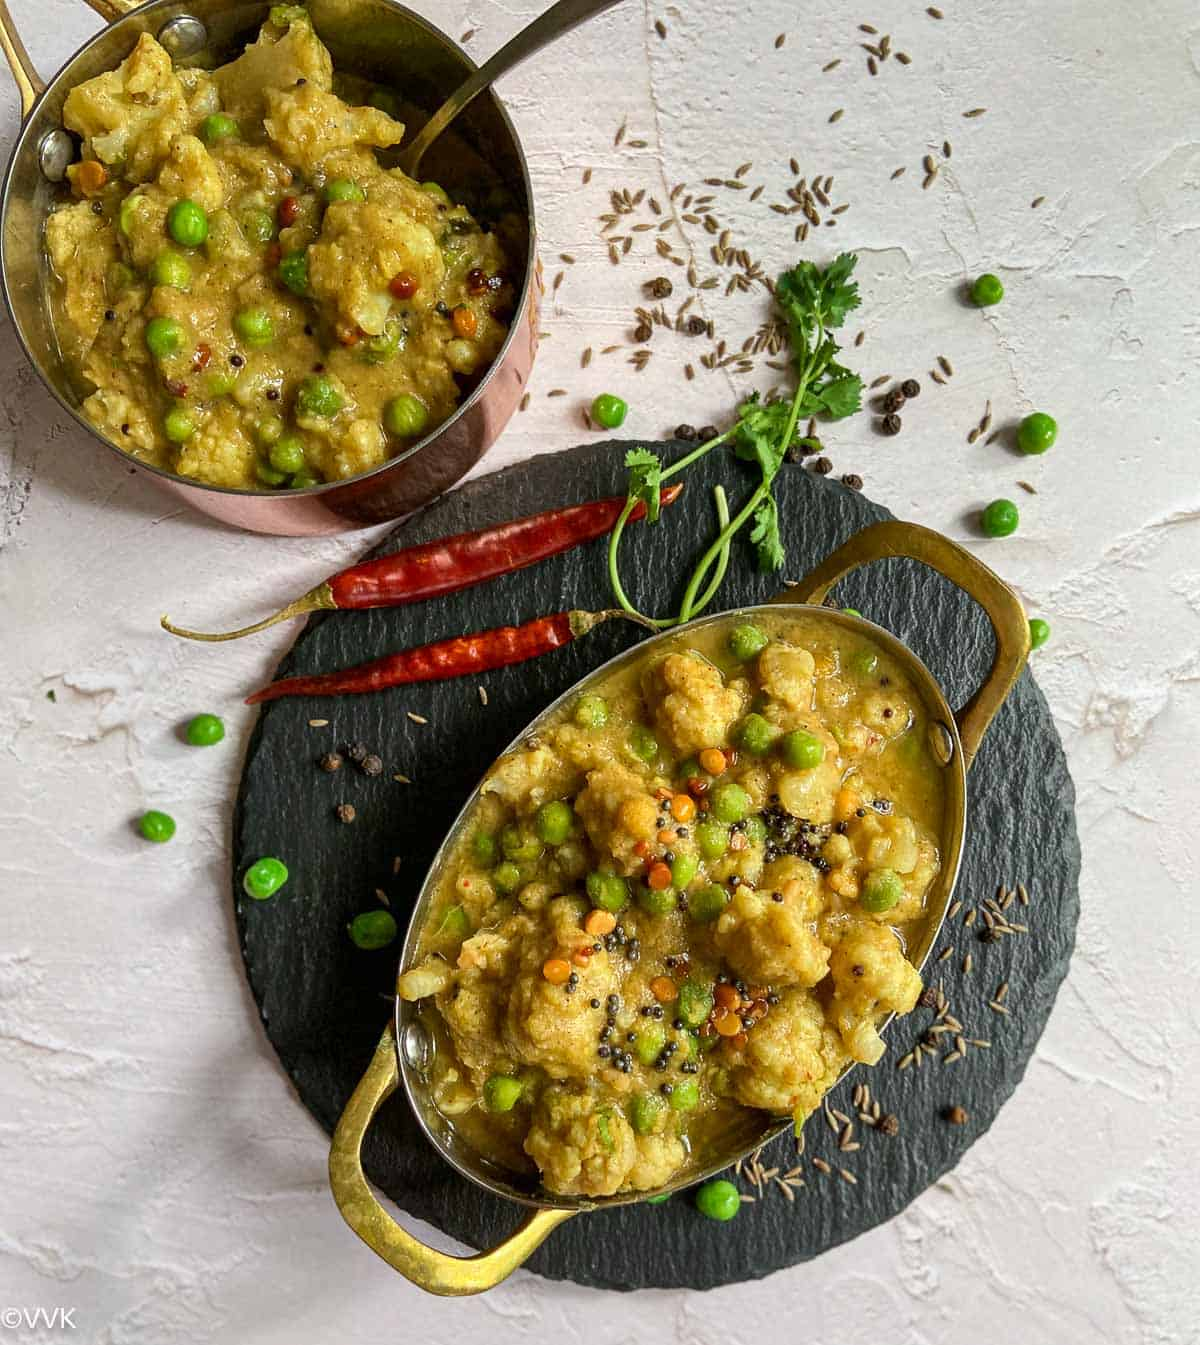 cauliflower pattani poricha kootu served on two brass wares placed on black board with cumin seeds, red chilies and pepper on the side